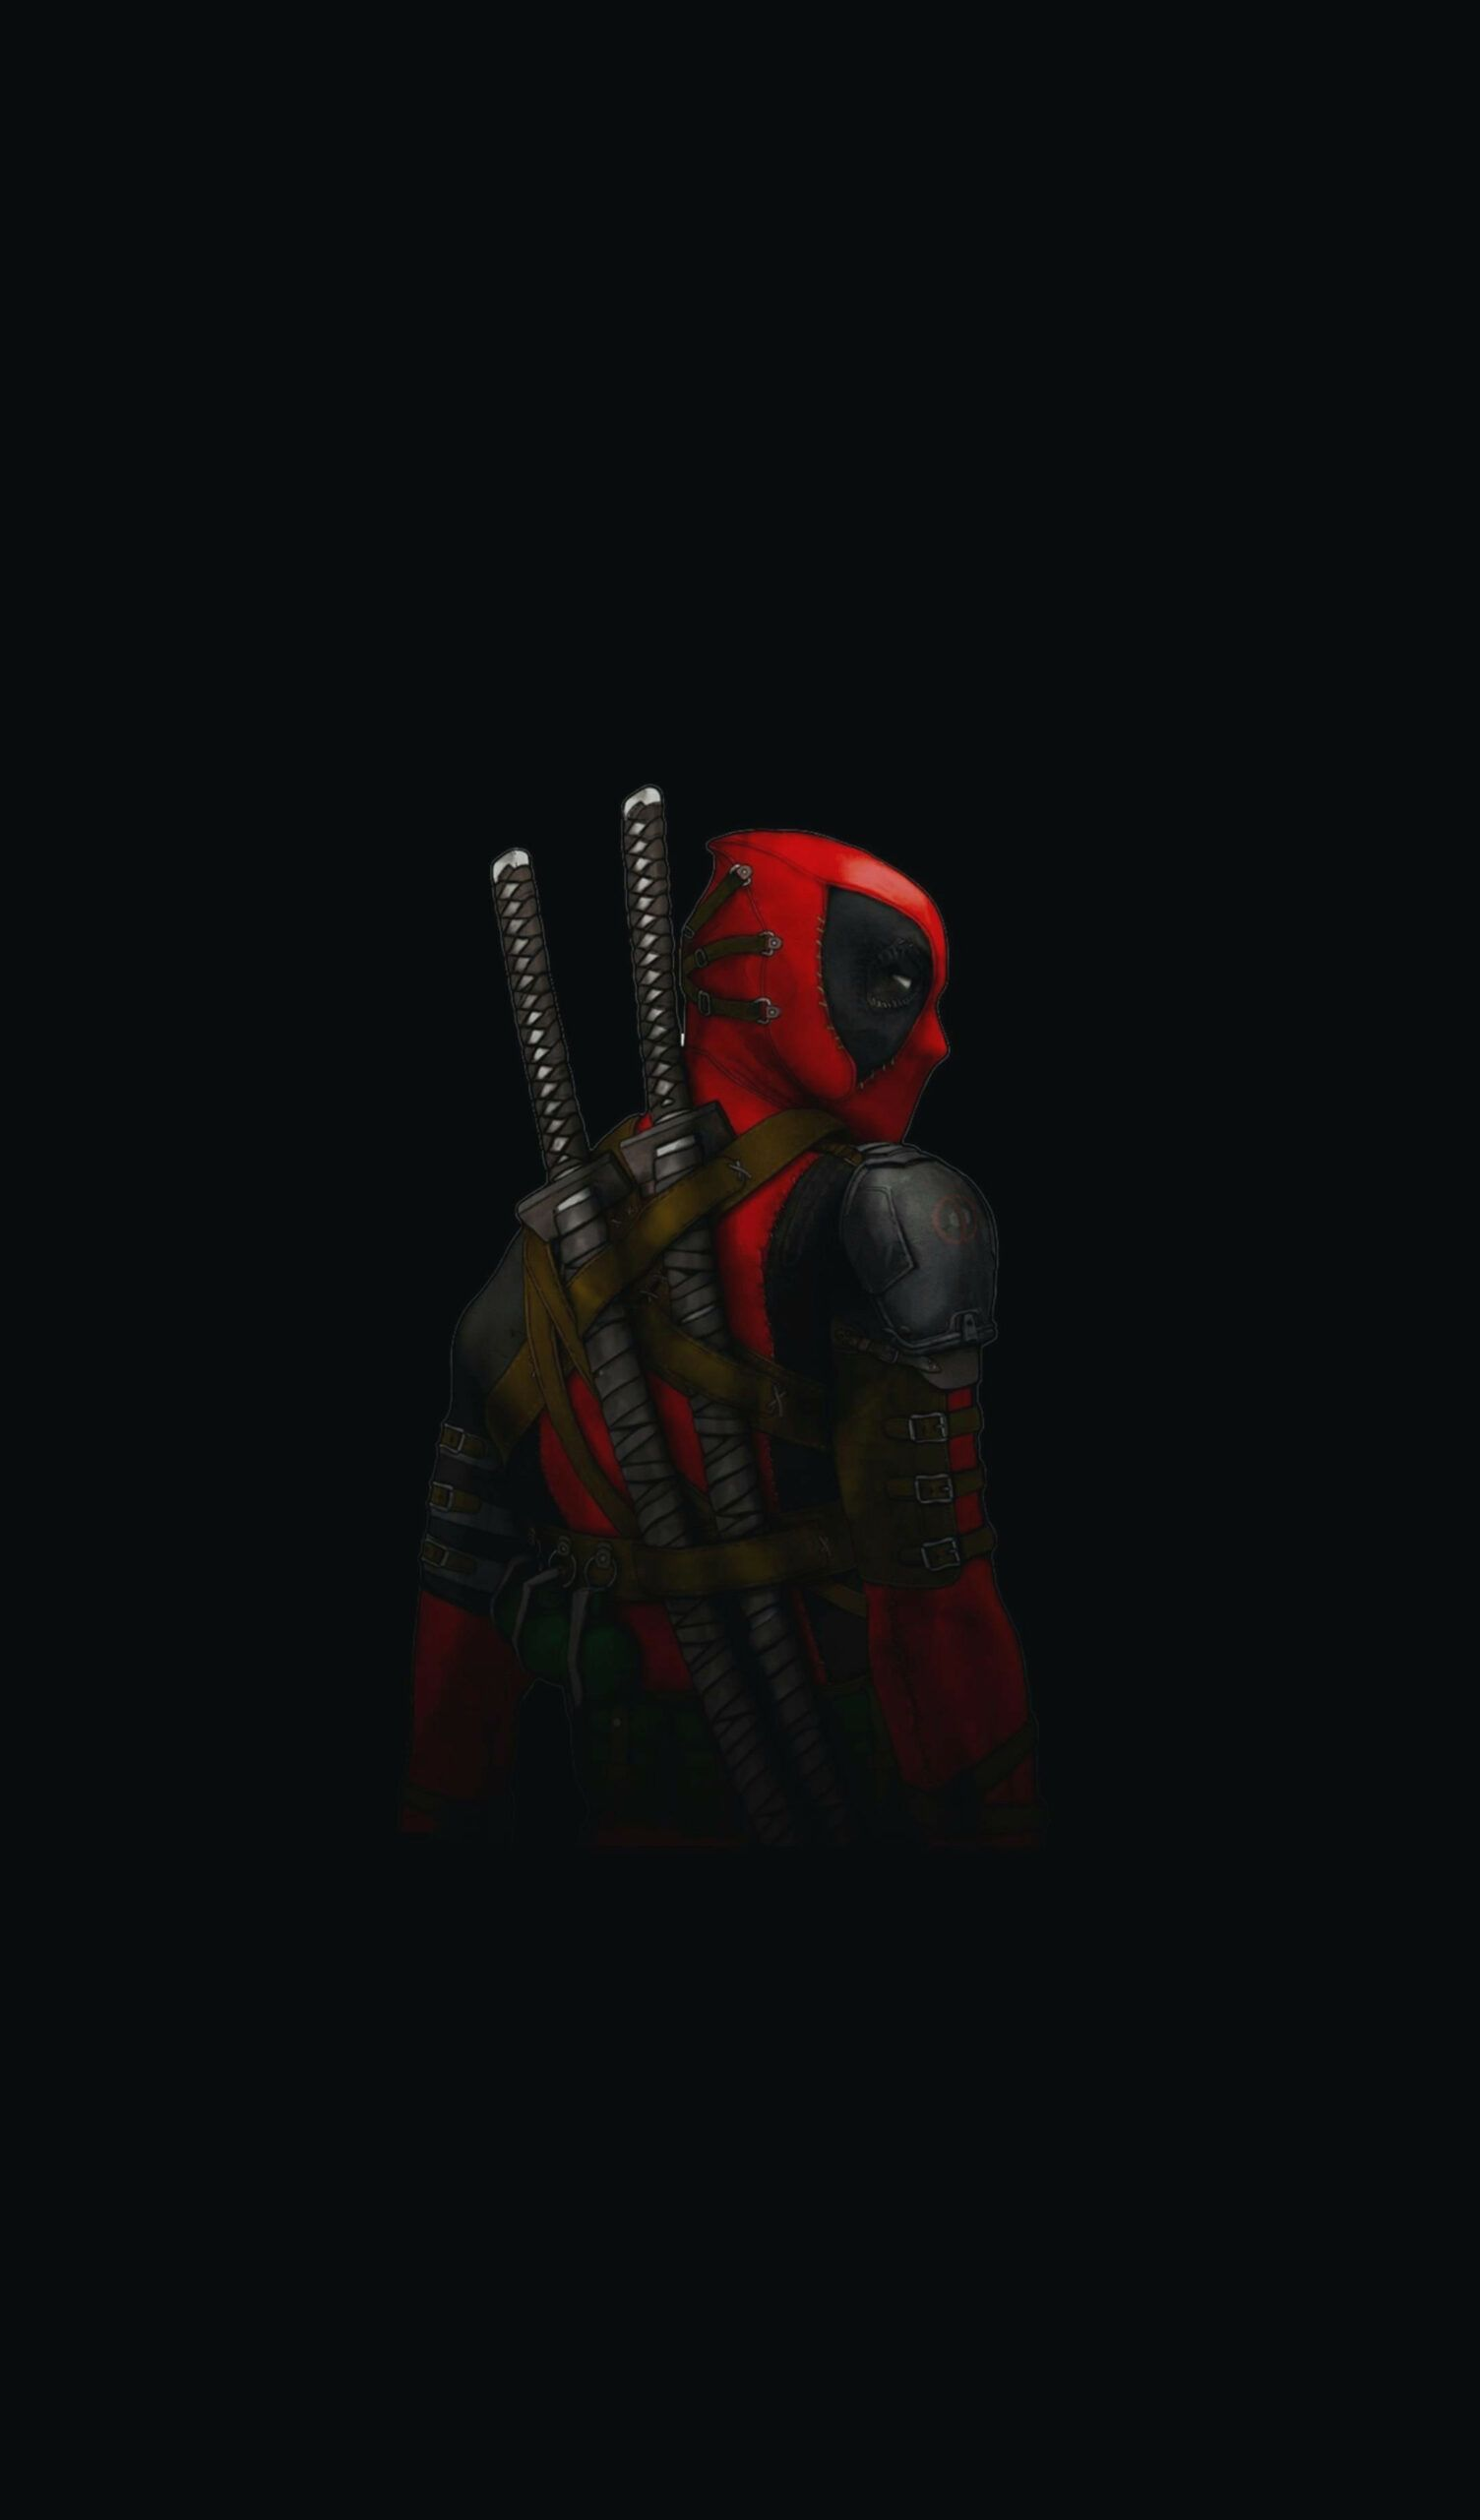 Awesome Deadpool Wallpapers Darkness Free Wallpaper And Backgrounds In 2020 Deadpool Wallpaper Iphone Deadpool Wallpaper Deadpool Art